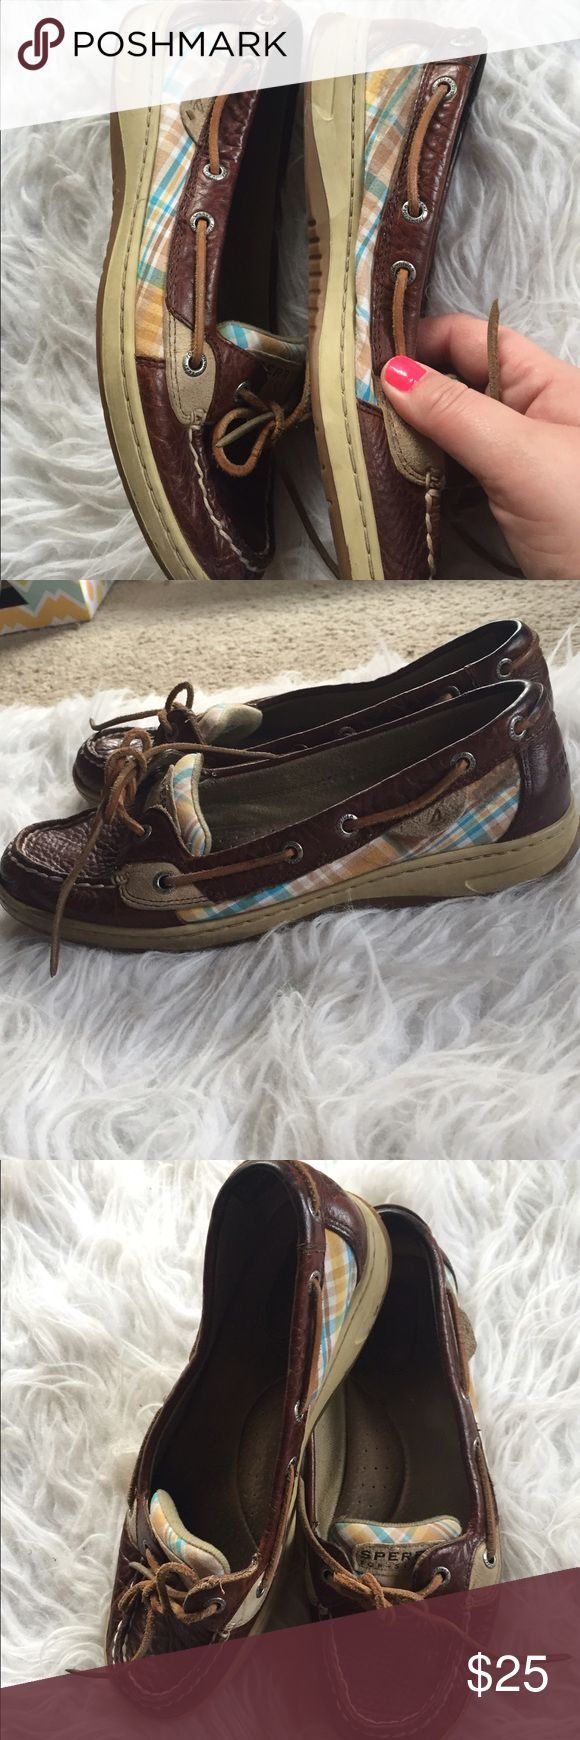 🆕 Sperry plaid boat shoes Very cute! They do have some signs of wear as pictured so priced accordingly! 👺NO TRADES DONT ASK! ✌🏼️Transactions through posh only!  😻 friendly home 💃🏼 if you ask a question about an item, please be ready to purchase (serious buyers only) ❤️Color may vary in person! 💗⭐️Bundles of 5+ LISTINGS are 5️⃣0️⃣% off! ⭐️buyer pays extra shipping if likely to be over 5 lbs 🙋thanks for looking! Sperry Top-Sider Shoes